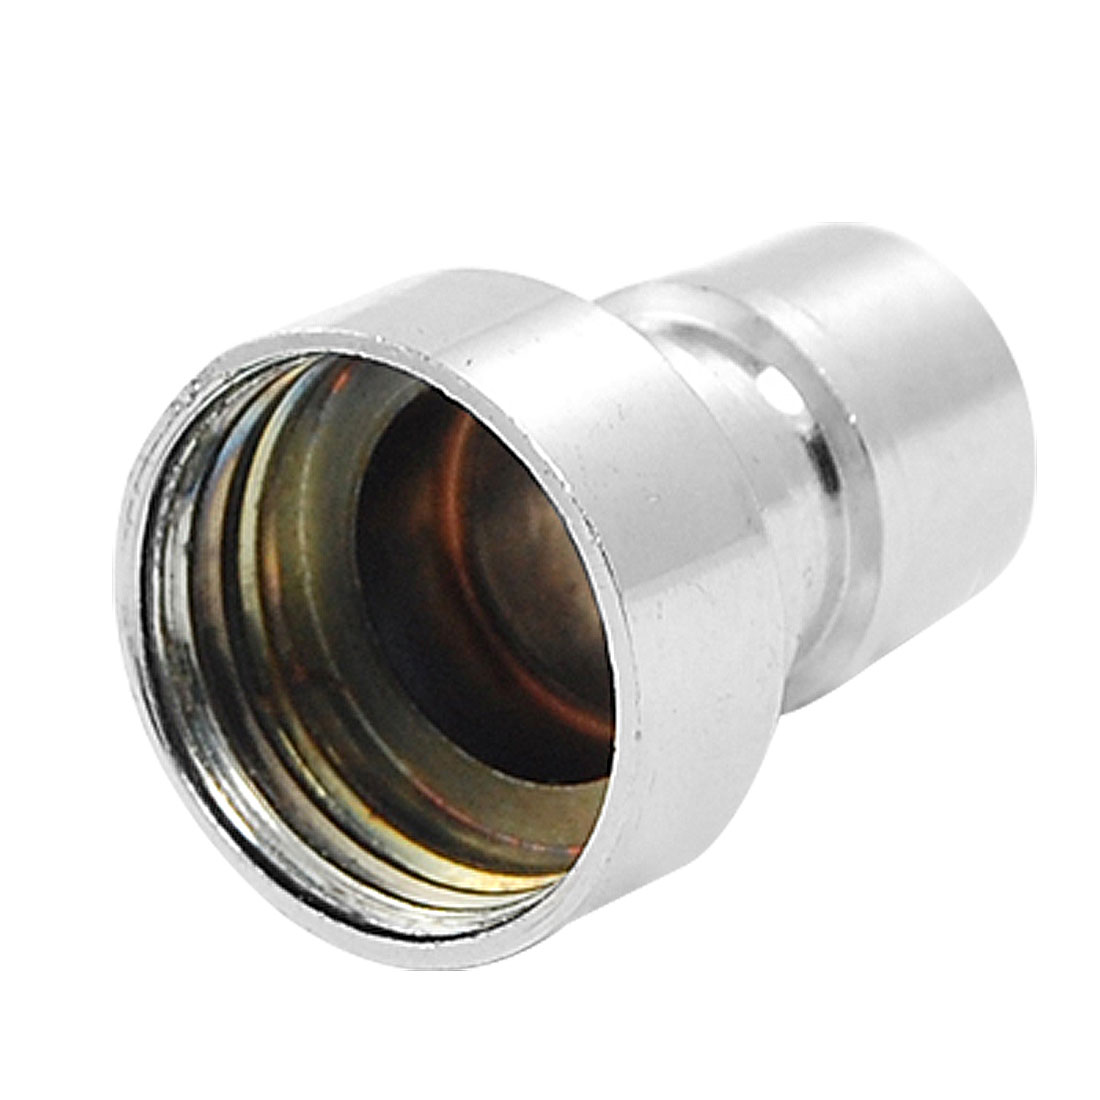 House Washing Machine Water Faucet Adapter Silver Tone